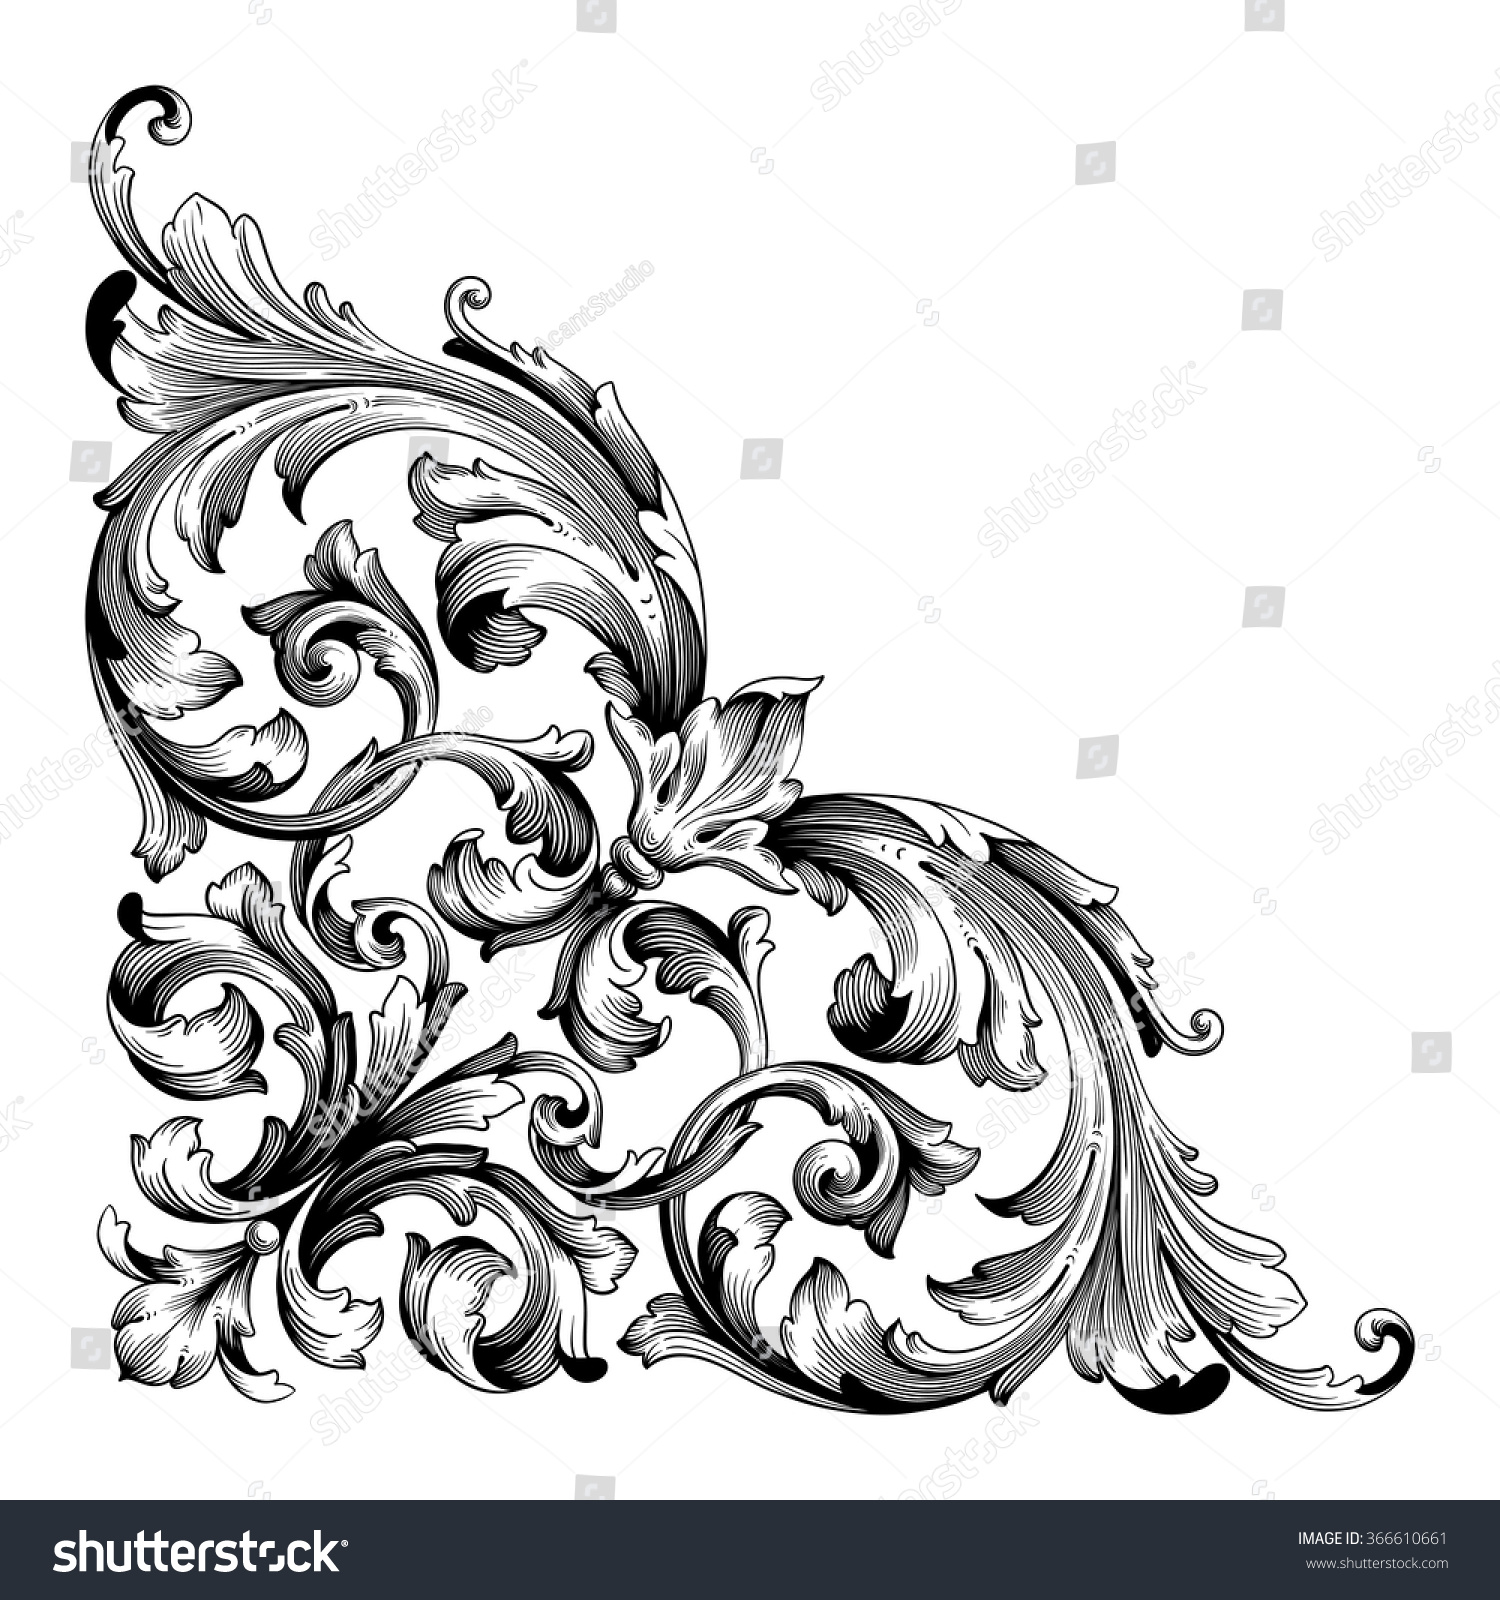 Vintage baroque frame scroll ornament engraving border floral retro pattern antique style acanthus foliage swirl decorative design element filigree calligraphy vector Damask style